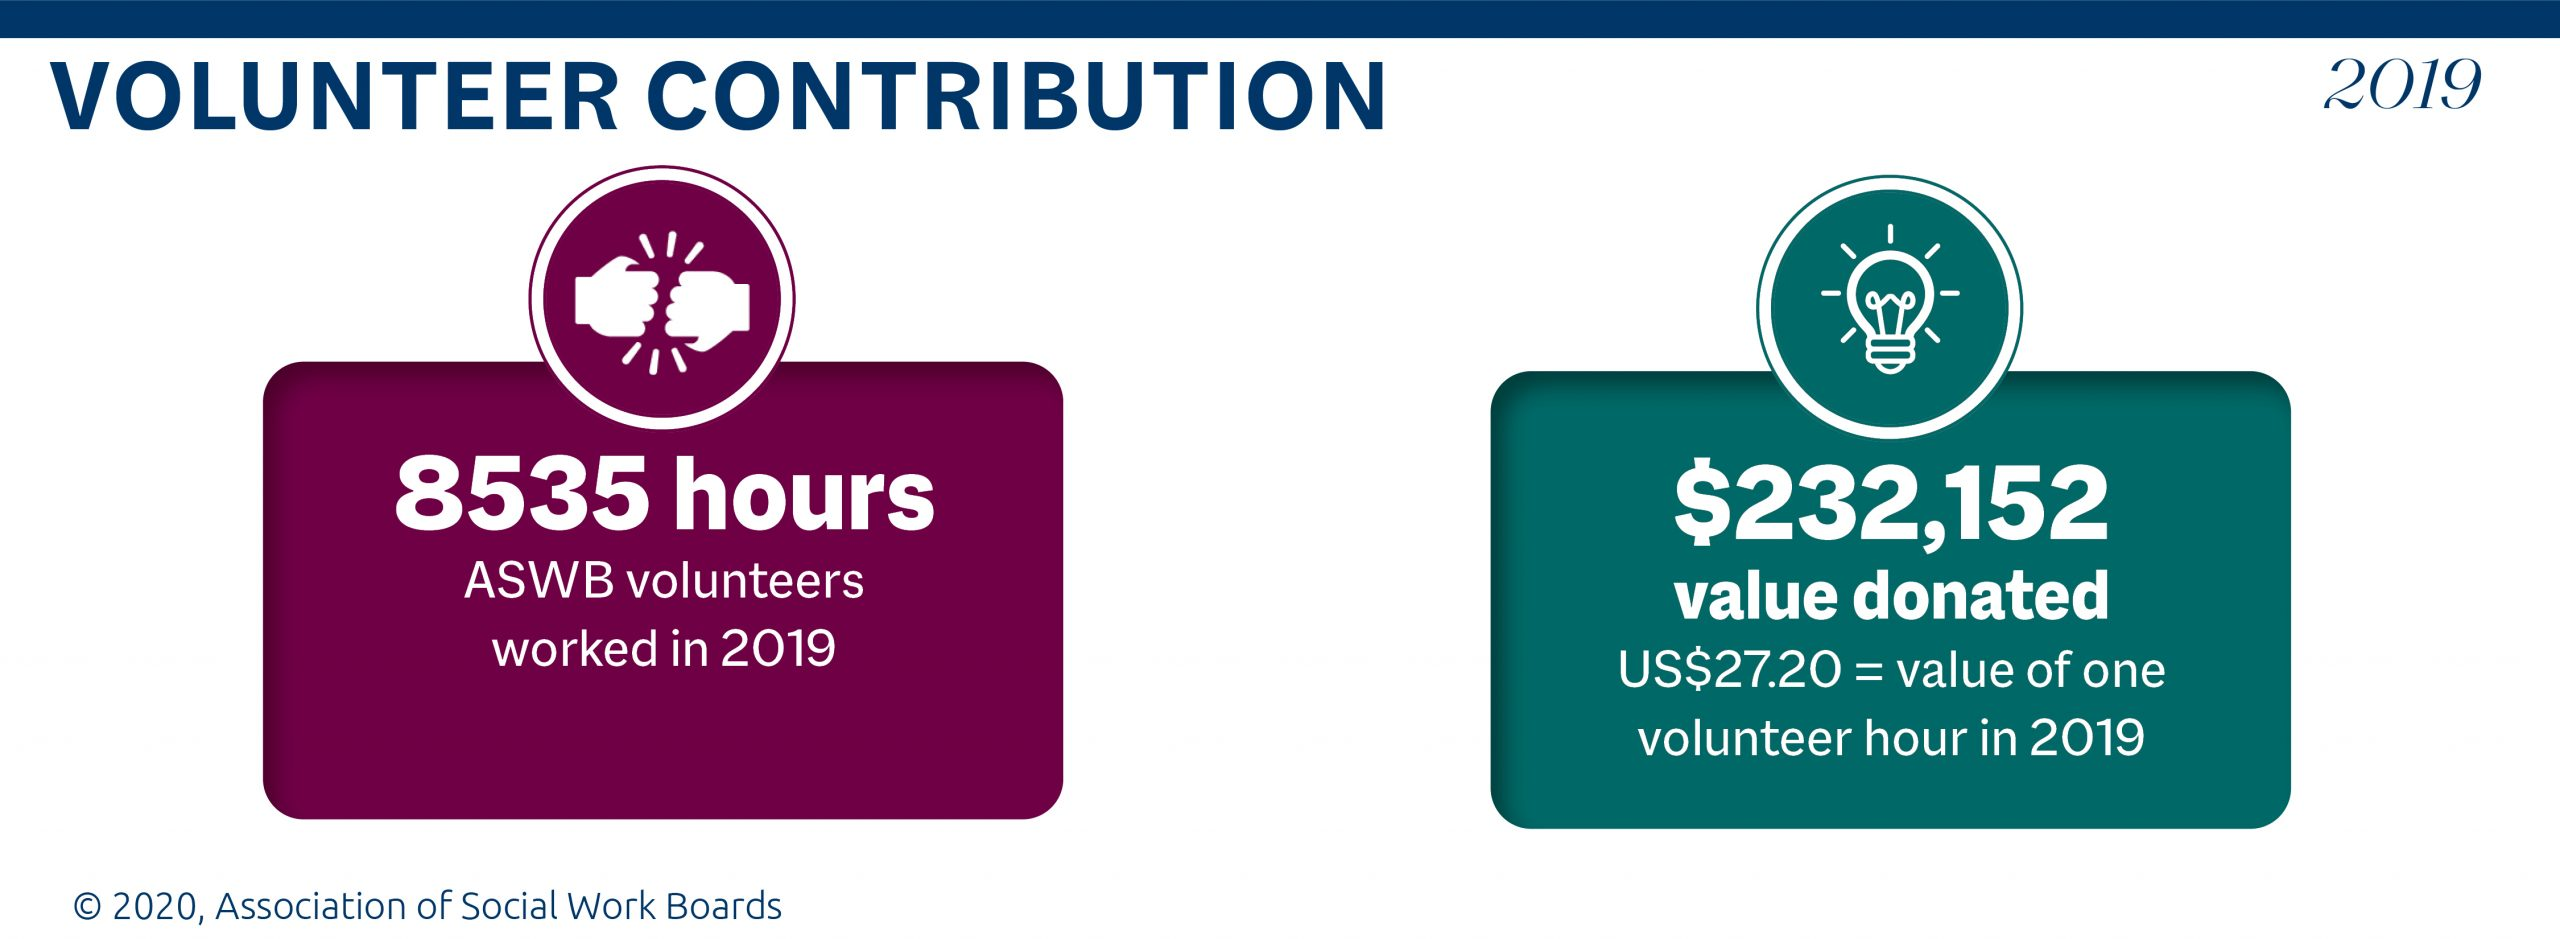 Graphic showing 8535 hours contributed by ASWB volunteers in 2019, and the $232,152 value of those hours in U.S. Dollars